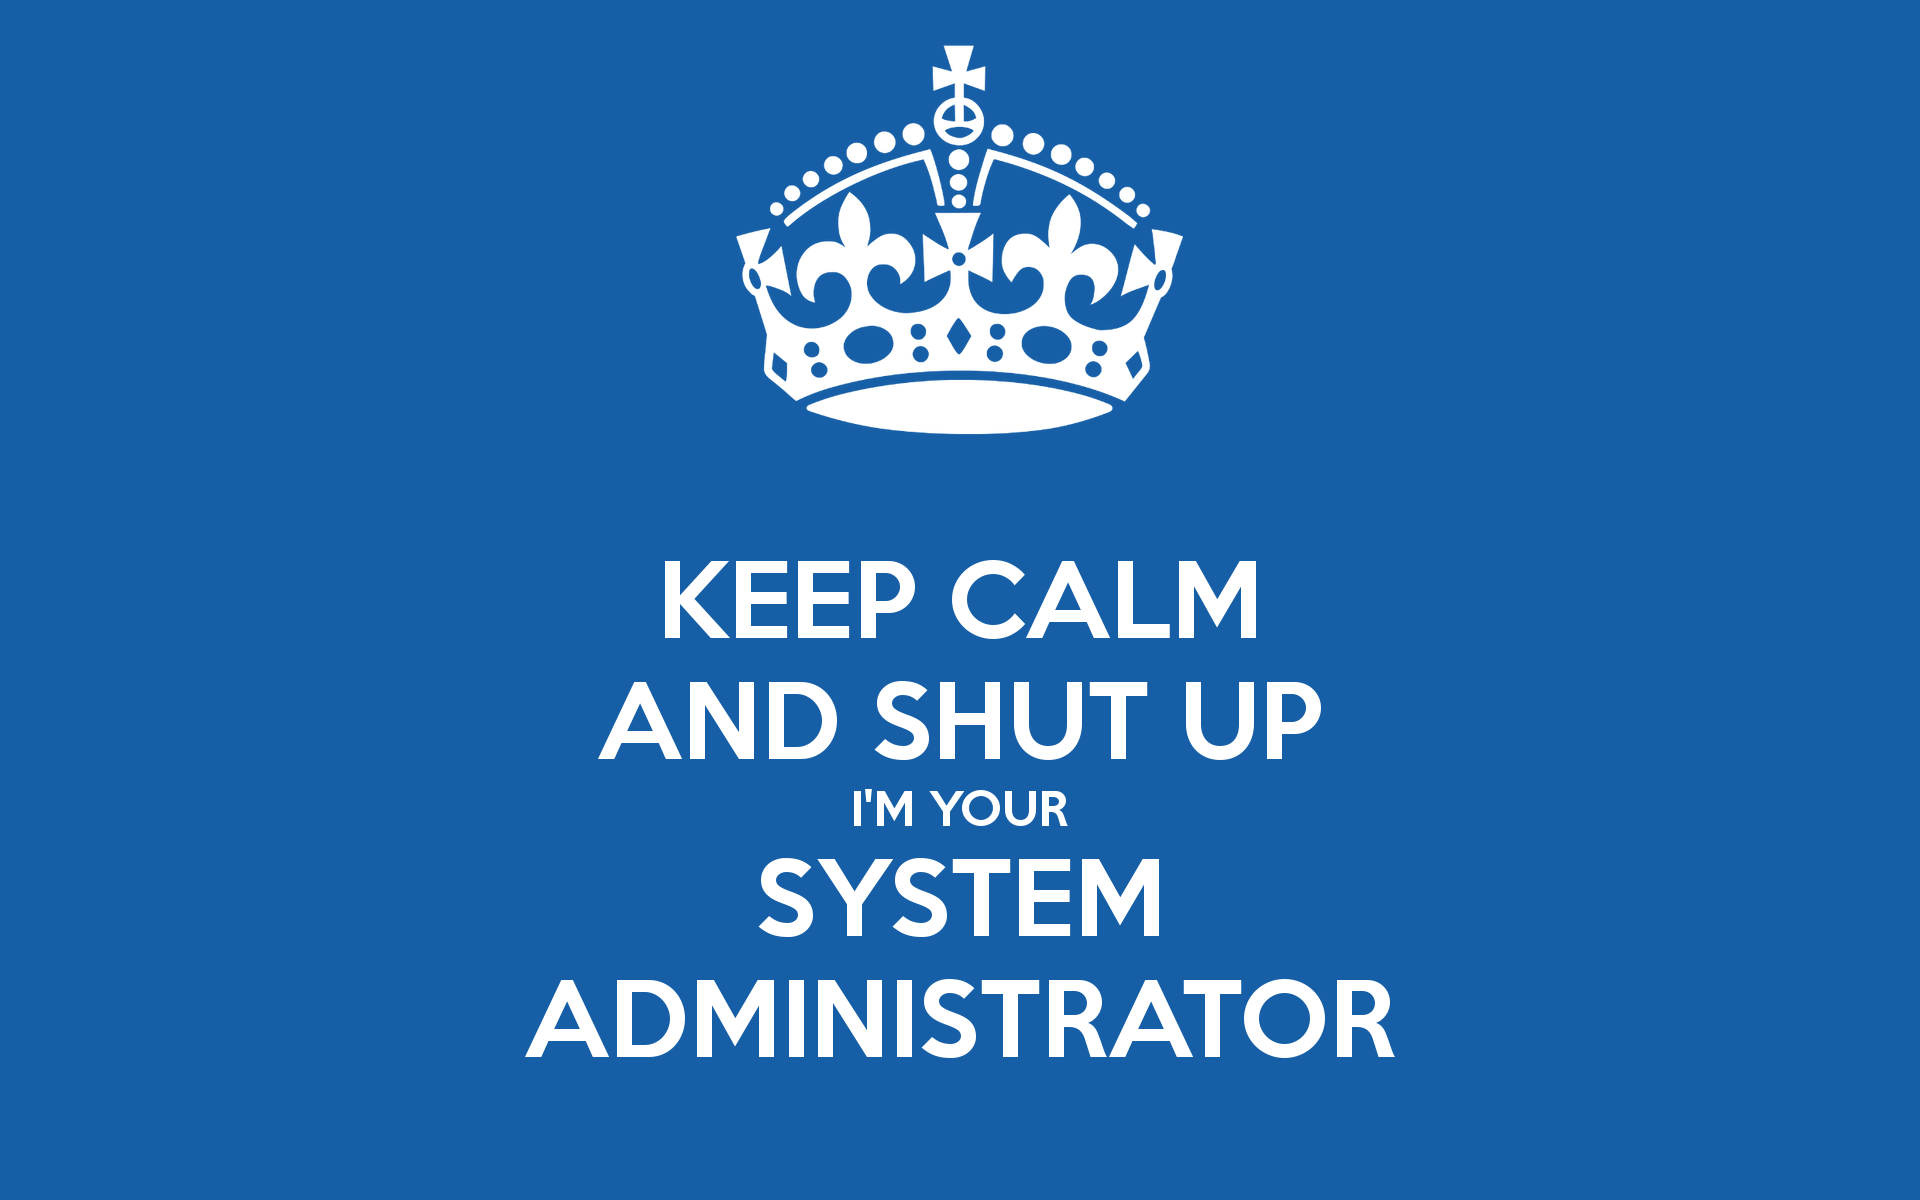 Administrator - I M Your System Administrator Another